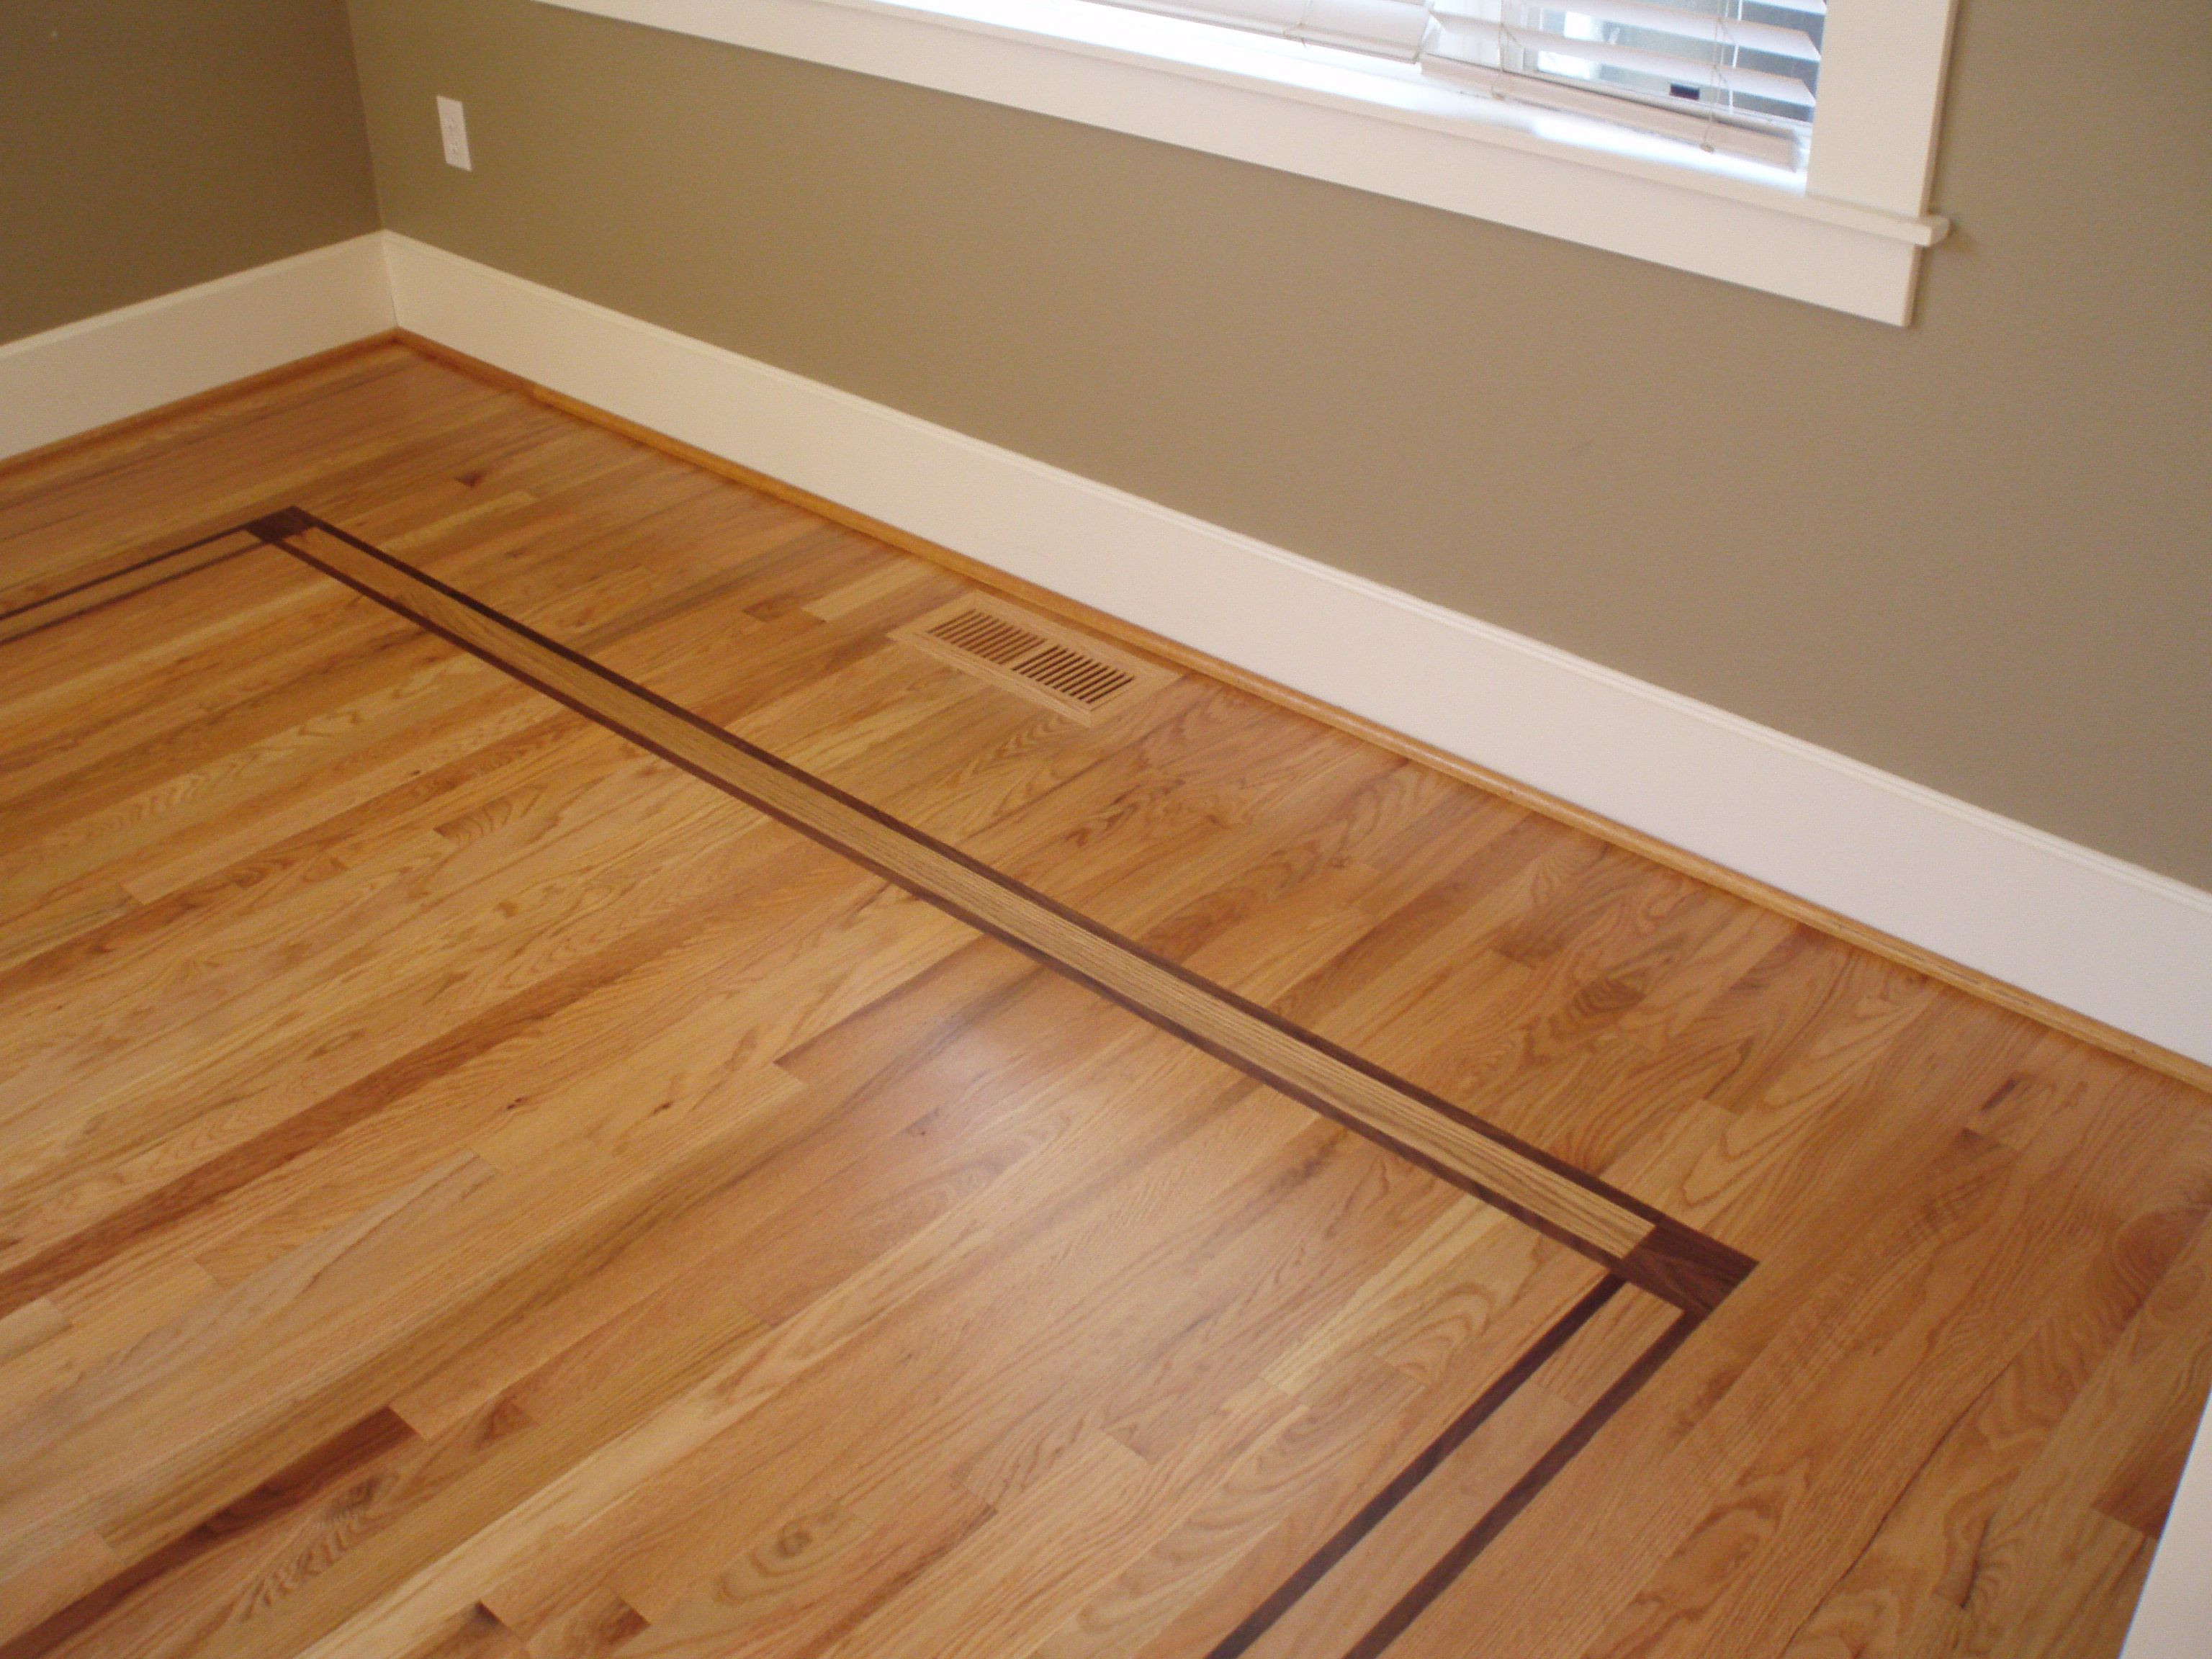 hardwood floor sanding ct of inlay of walnut with red oak flooring www dominohardwoodfloors com with regard to inlay of walnut with red oak flooring www dominohardwoodfloors com portland or domino hardwood floors inc